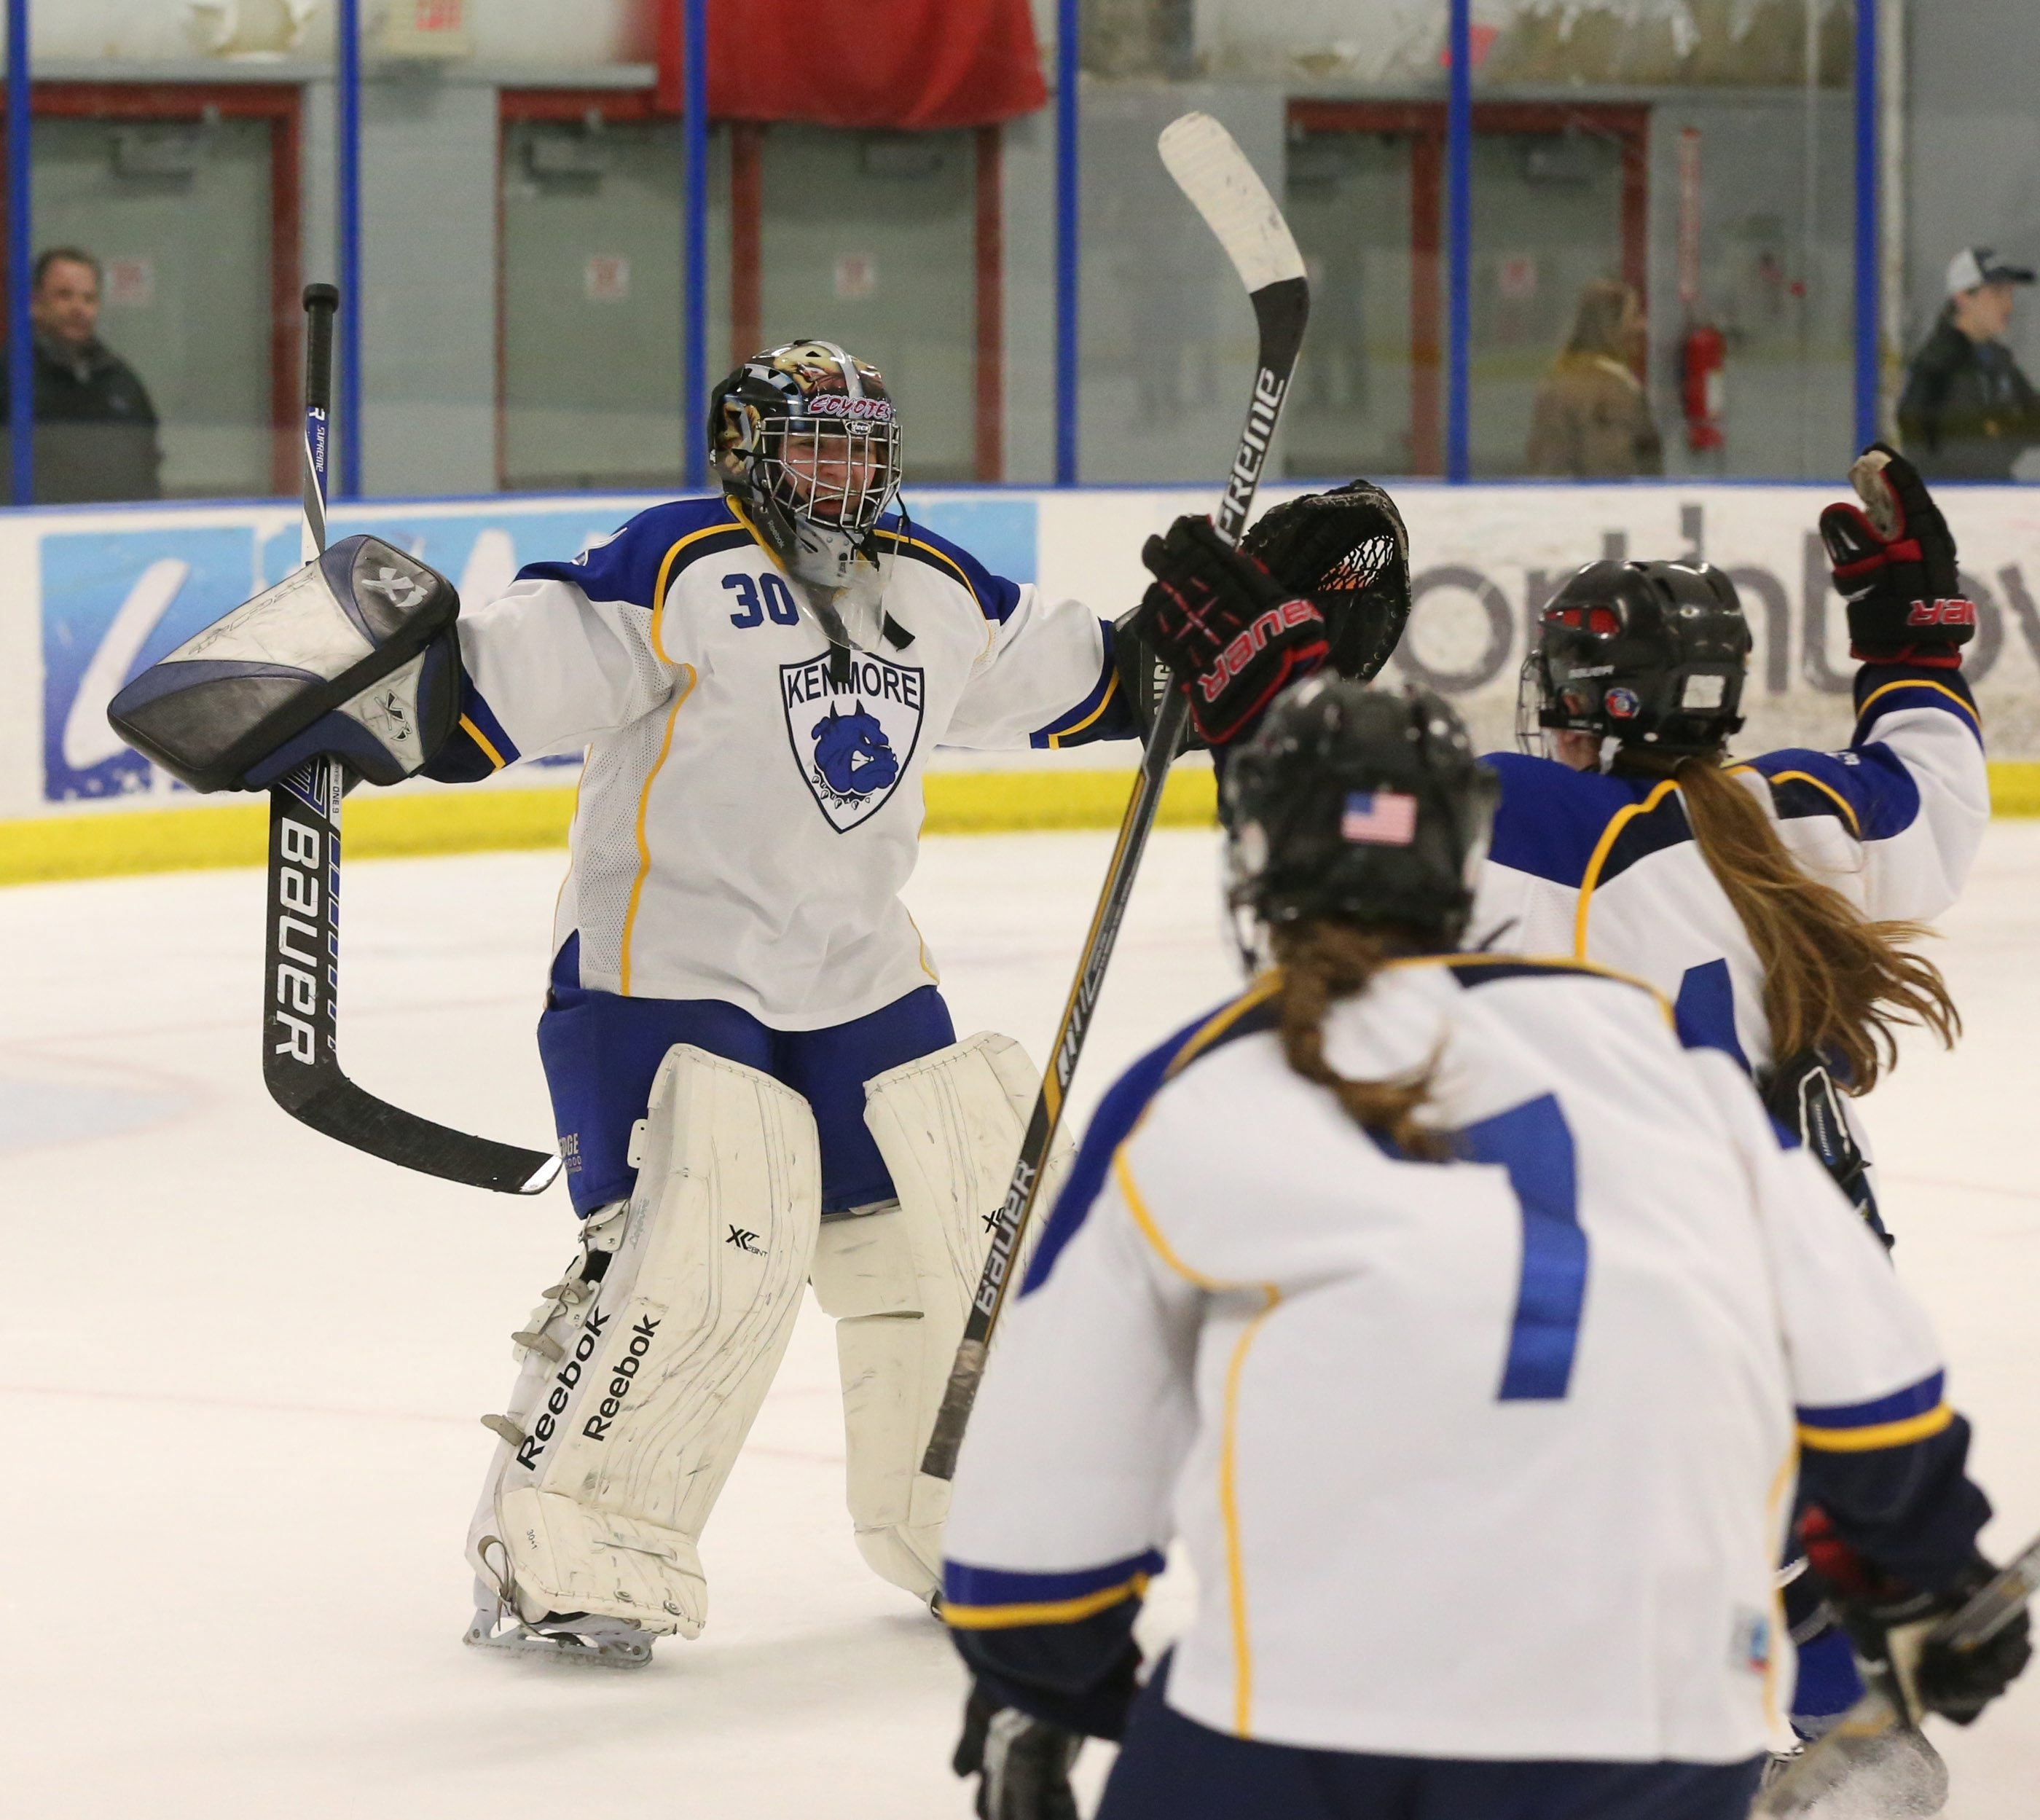 Kenmore/Grand Island goaltender Cara Lynn Klopp celebrates after beating Orchard Park/Frontier, 4-2, in the Section VI championship game at Northtown Center at Amherst.